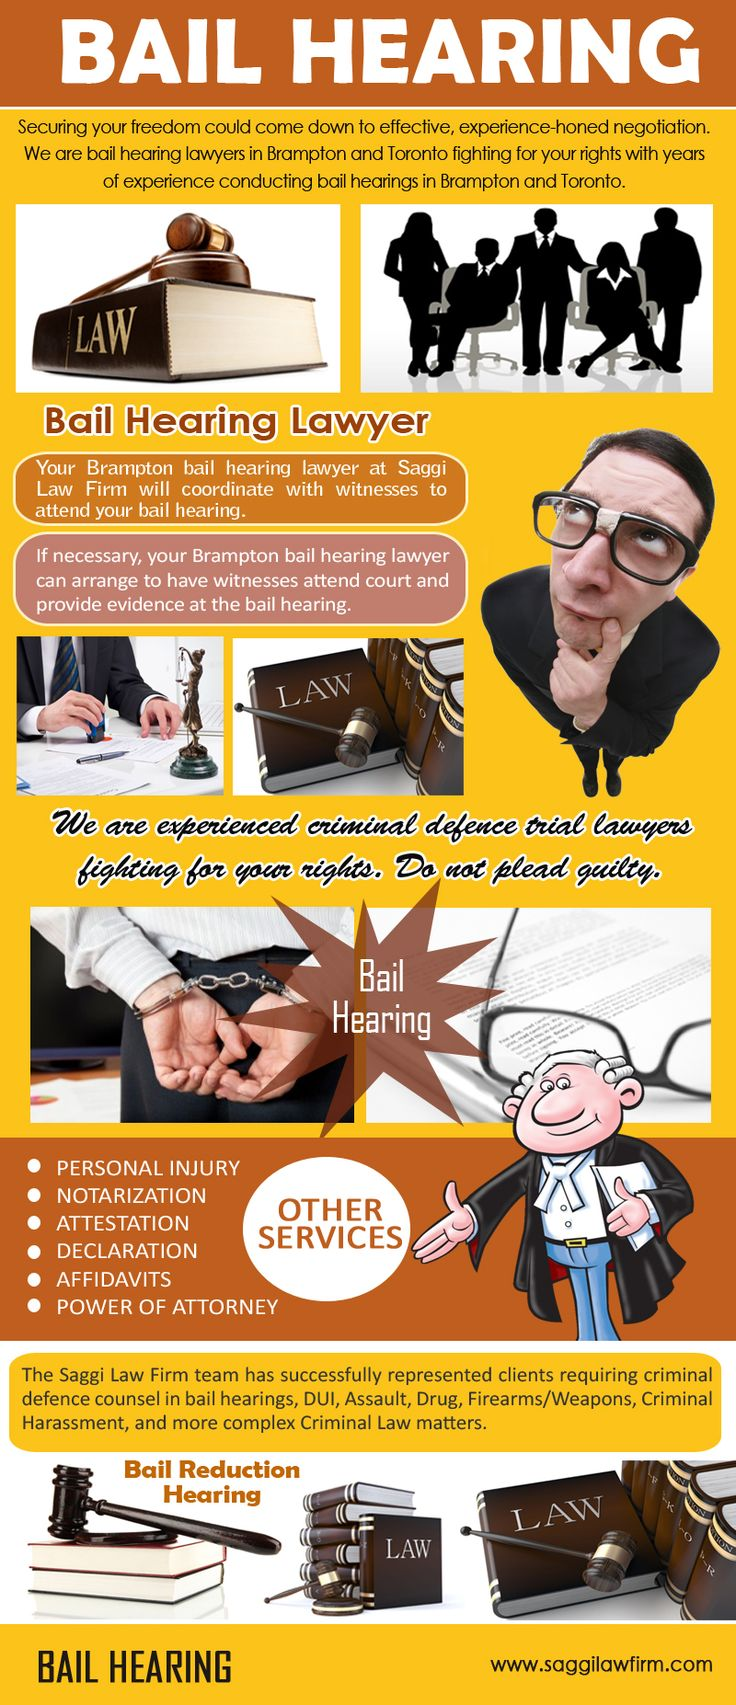 Check this link right here http://saggilawfirm.com/criminal-law/bail-hearings-bail-reviews/ for more information on Bail Hearing Canada. Hiring Bail Hearing Canada lawyer early in the action against you can affect whether a criminal charge will be laid, whether you can achieve bail or a release pending the completion of the case against you, the quantity and quality of evidence collected by the police, and the quality of defense strategies you could use.